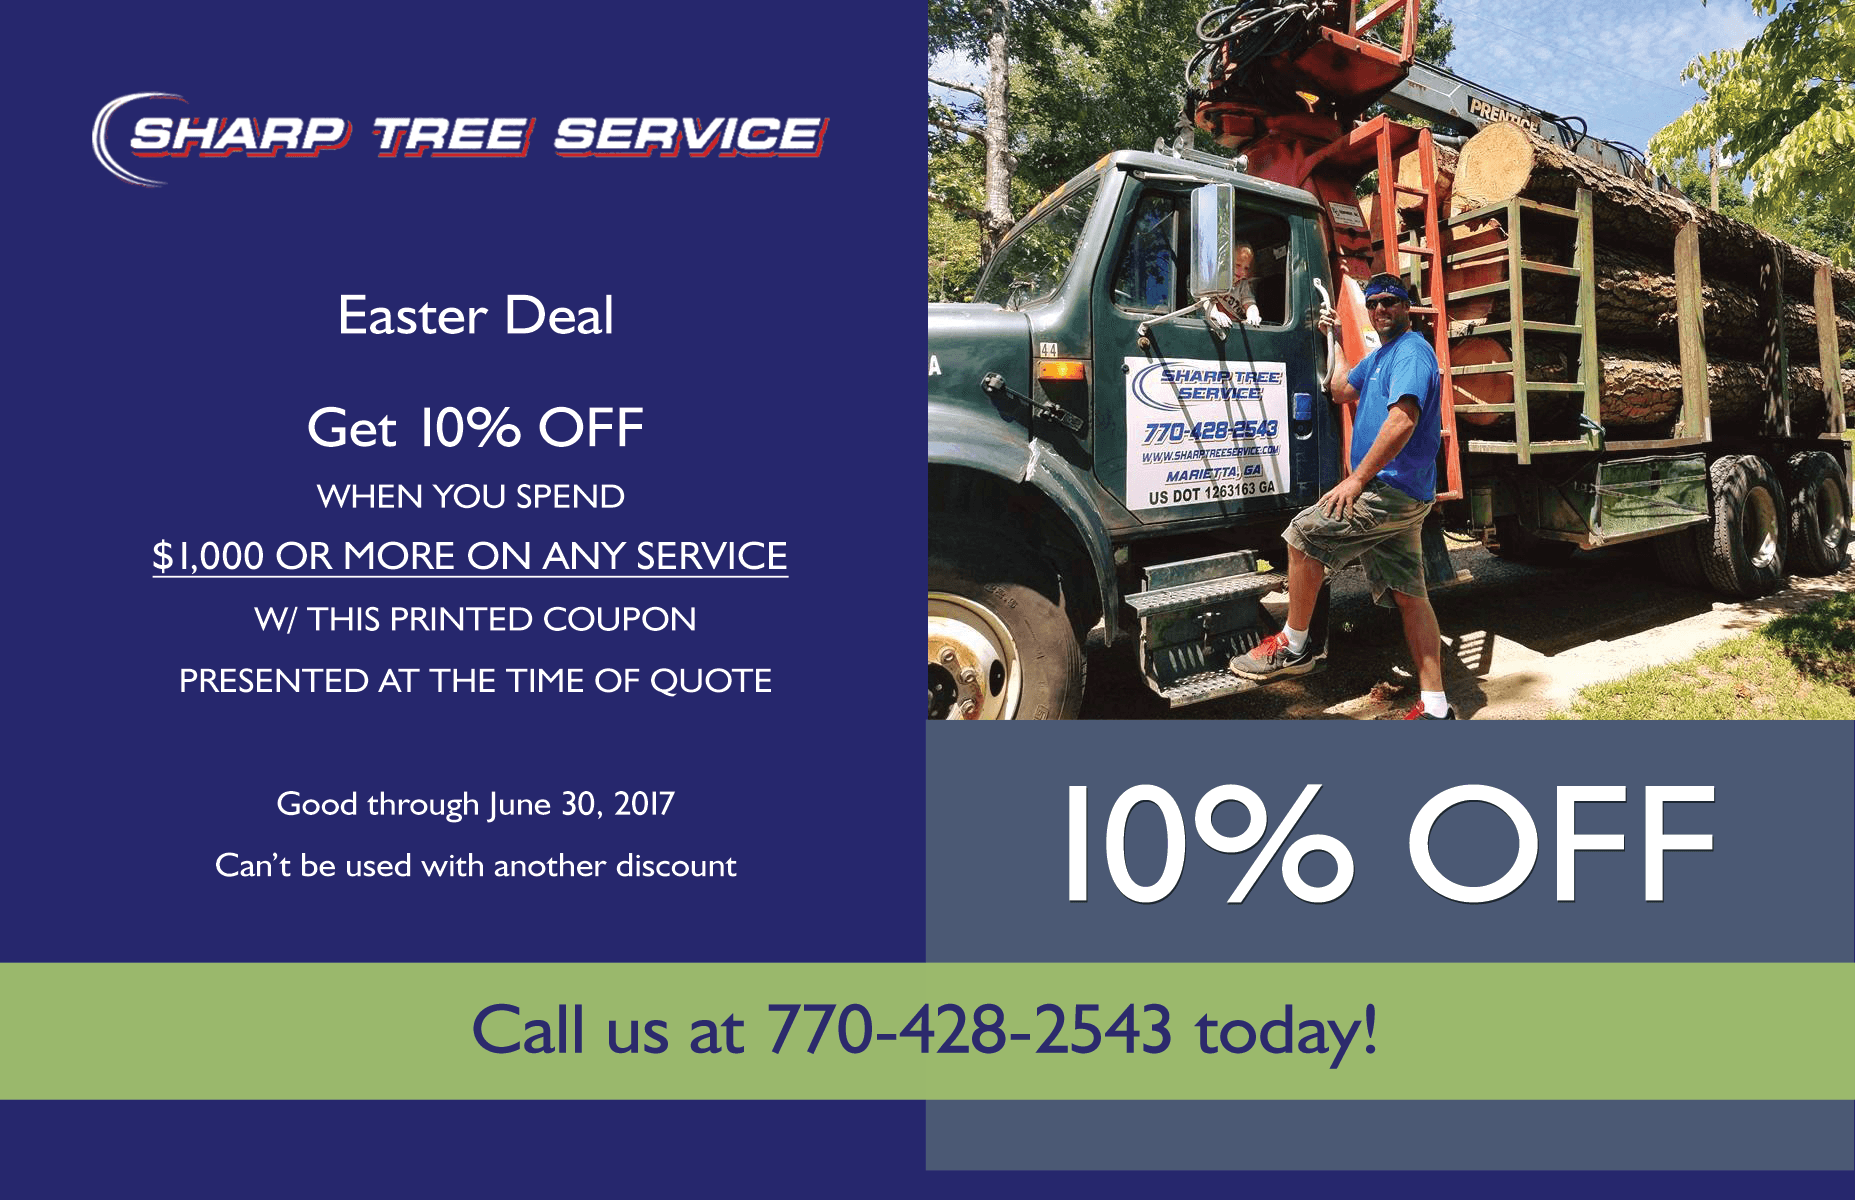 May 2017 Sharp Tree Service specials